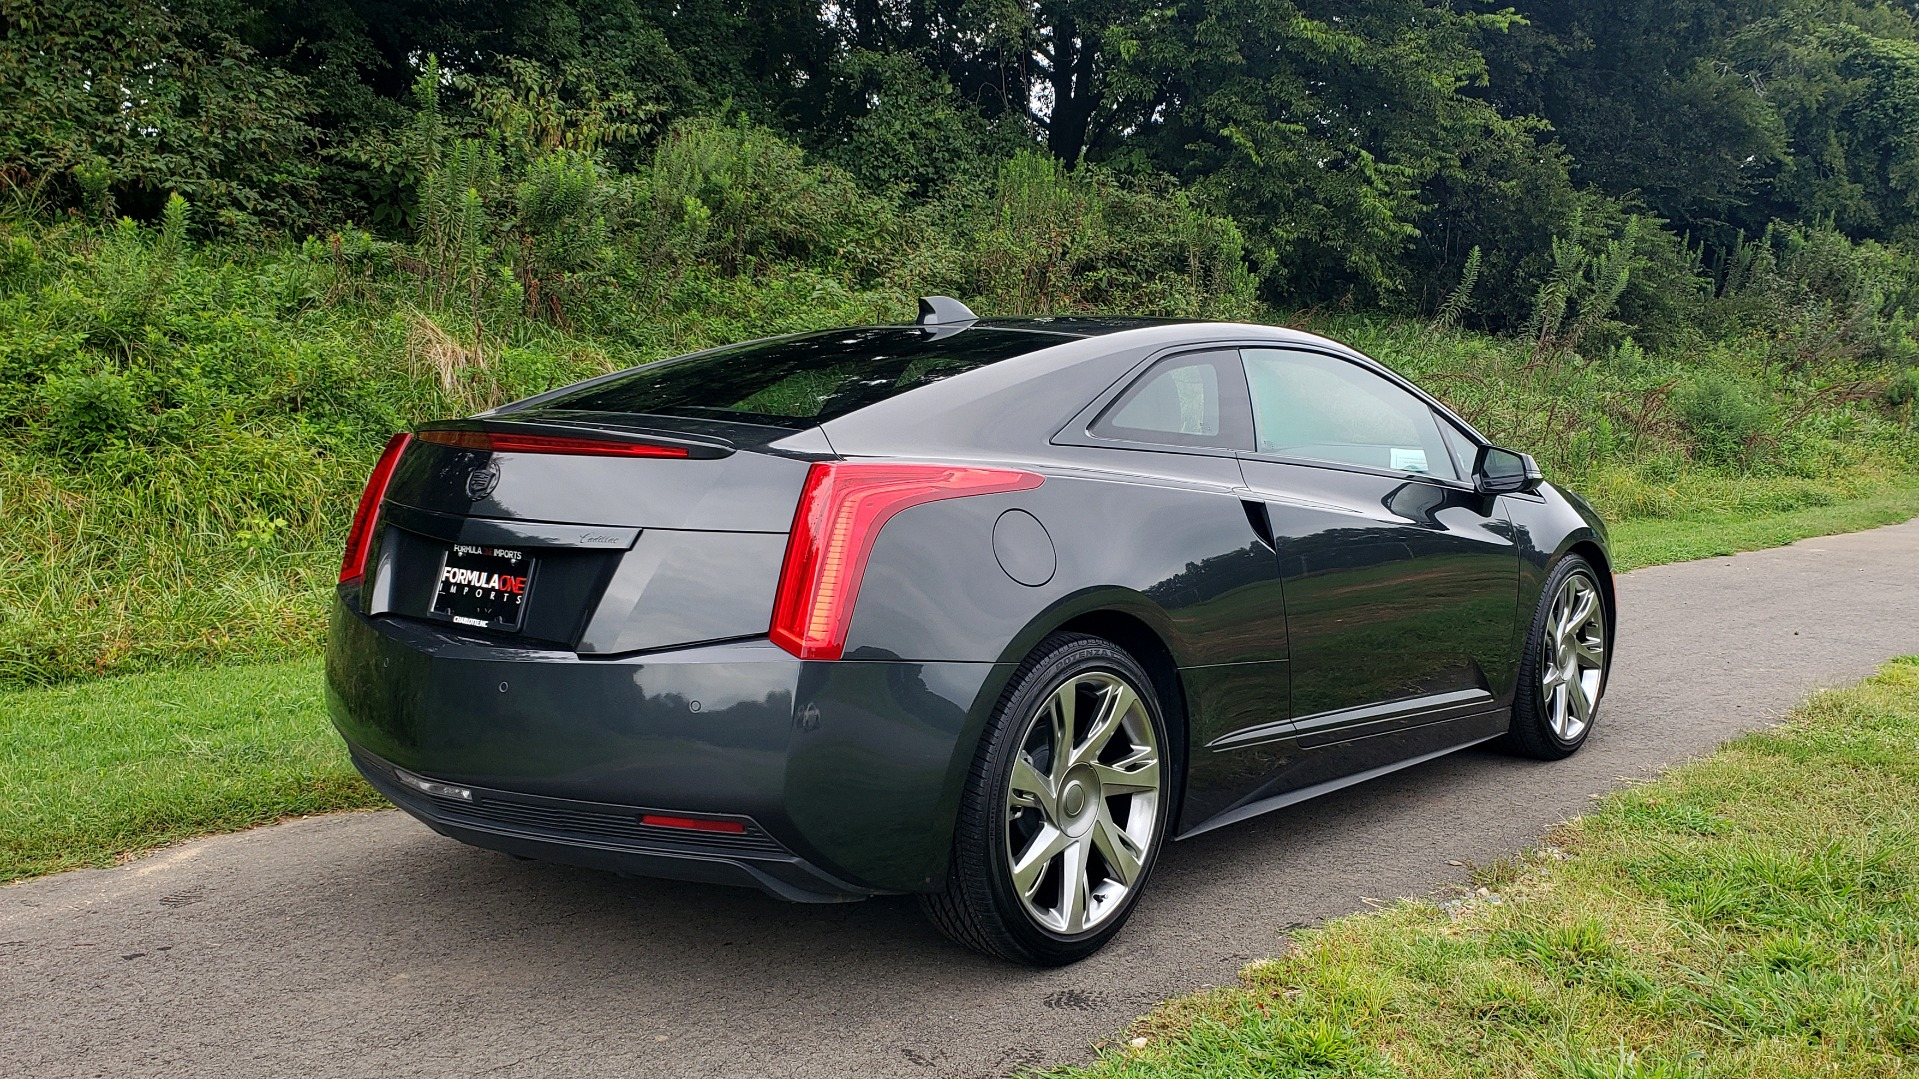 Used 2014 Cadillac ELR 2DR COUPE / HYBRID / NAV / BOSE / HEATED SEATS / REARVIEW for sale $34,000 at Formula Imports in Charlotte NC 28227 8